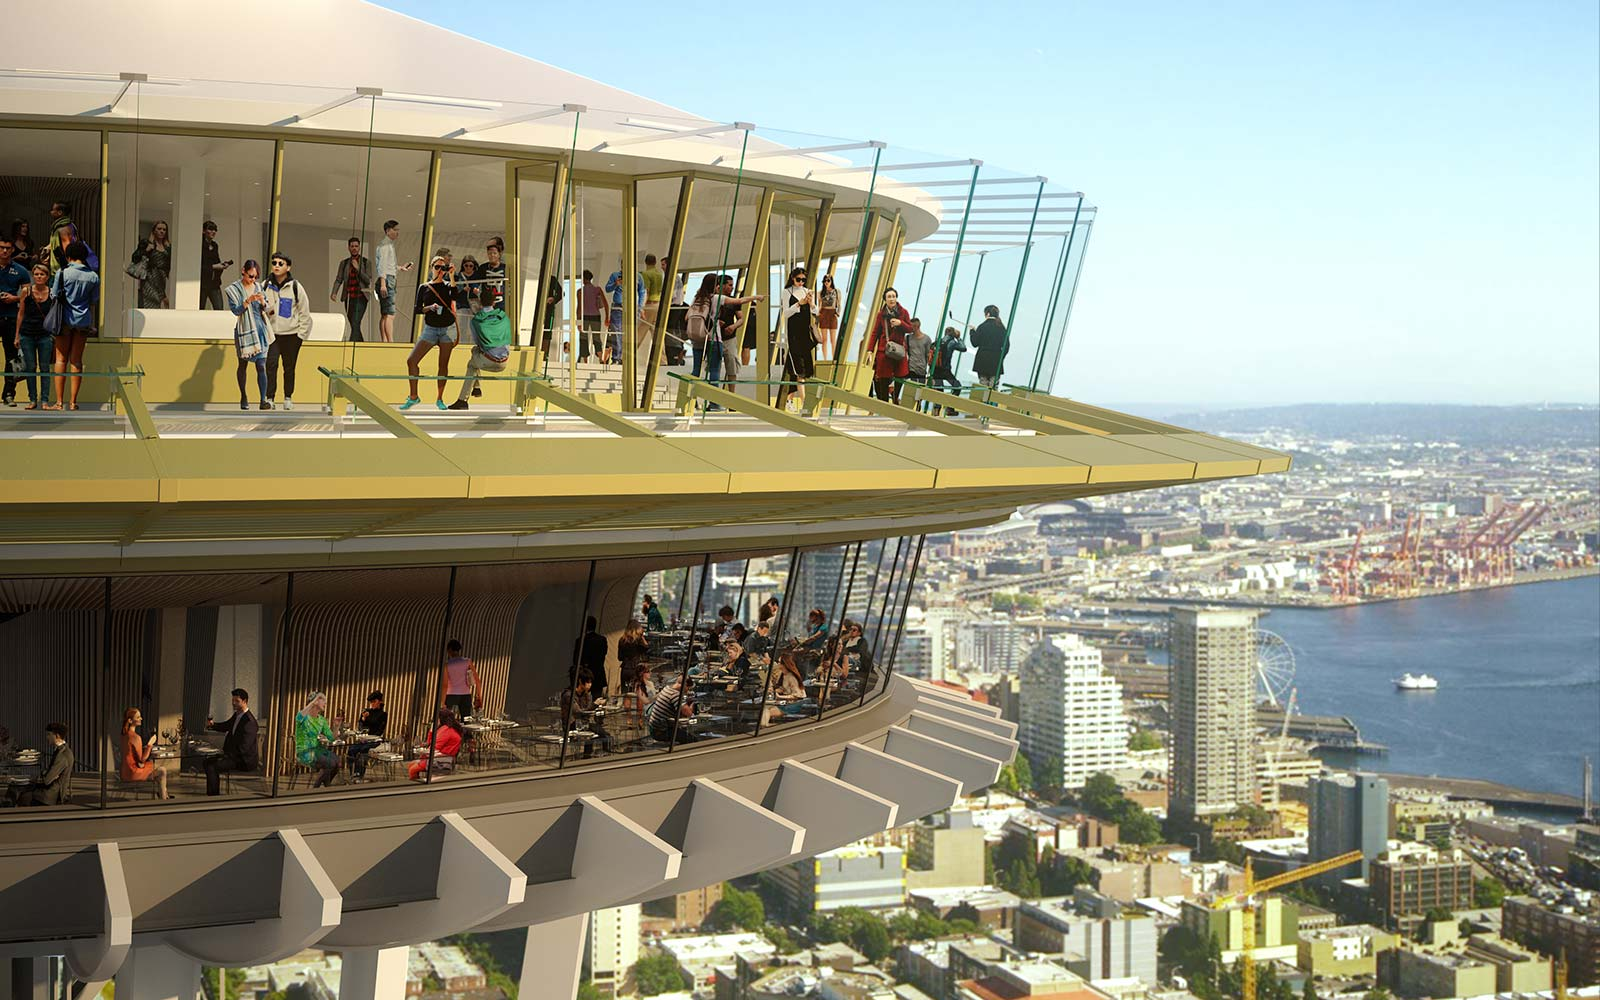 Seattle's Space Needle Is Getting a Glass-bottomed Dining Room With Dizzying Skyline Views